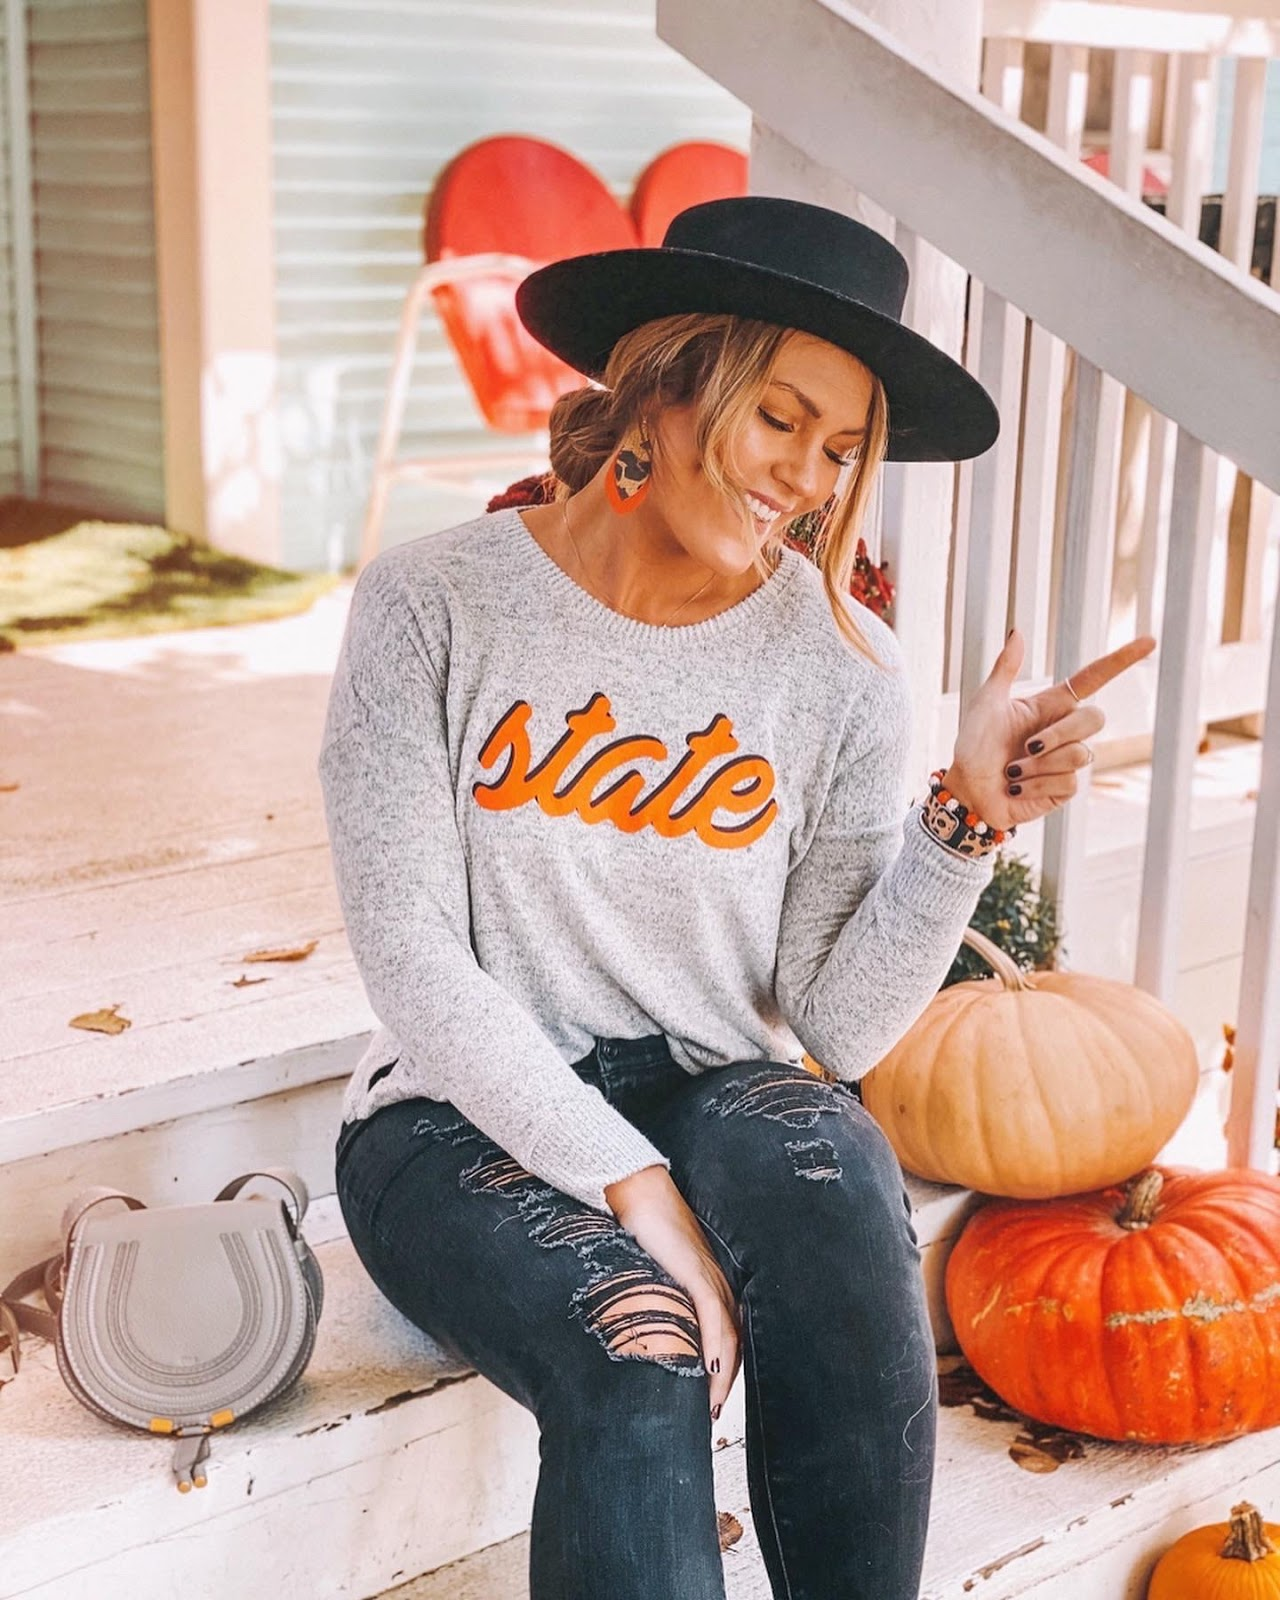 @amandasok sports an Oklahoma State pullover for Thanksgiving's Bedlam Rivalry game